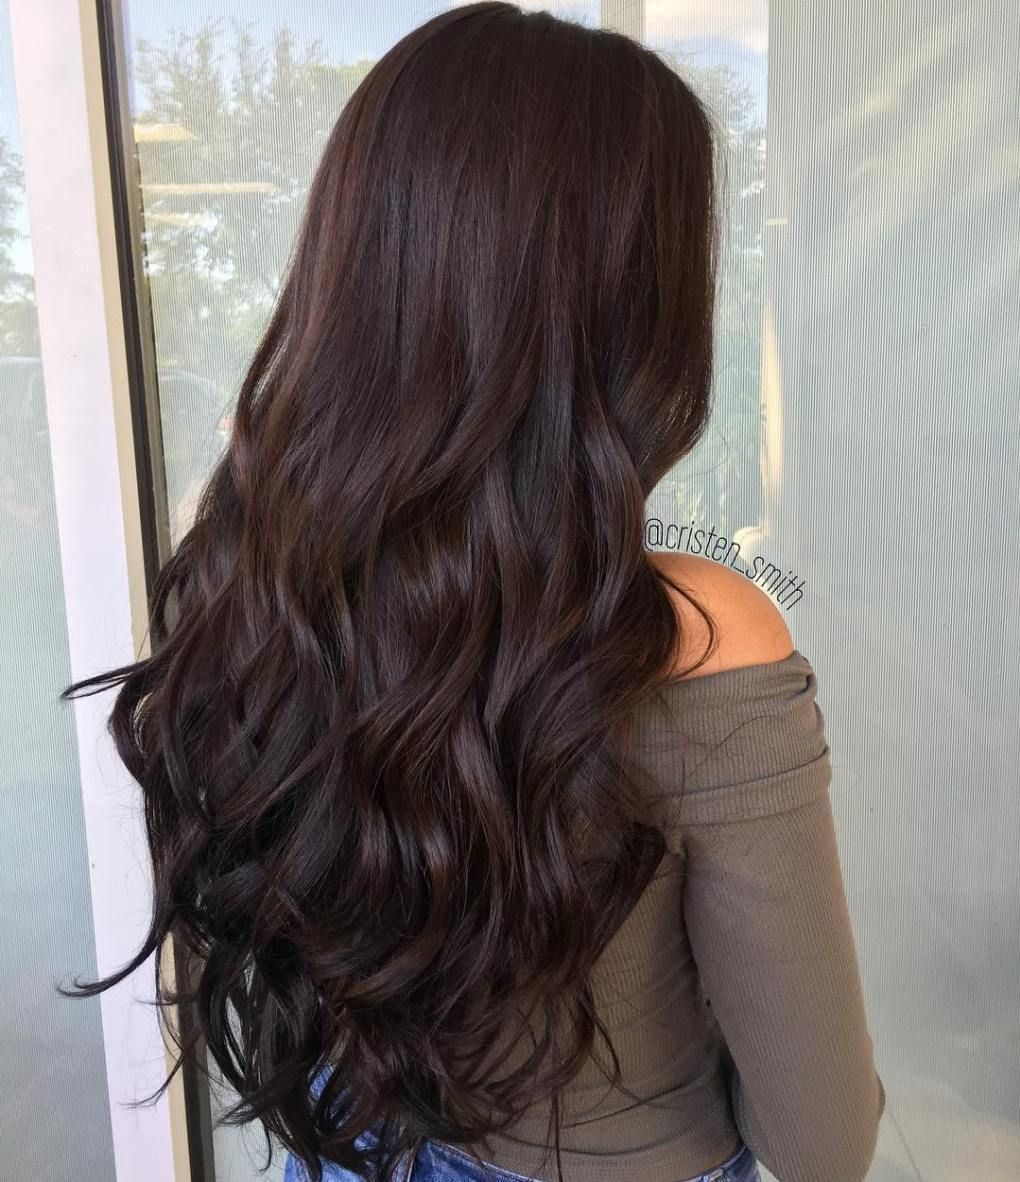 Curly Brown Hairstyle For Long Hair Shorthaircolor Hair Styles Curly Hair Styles Naturally Long Hair Styles